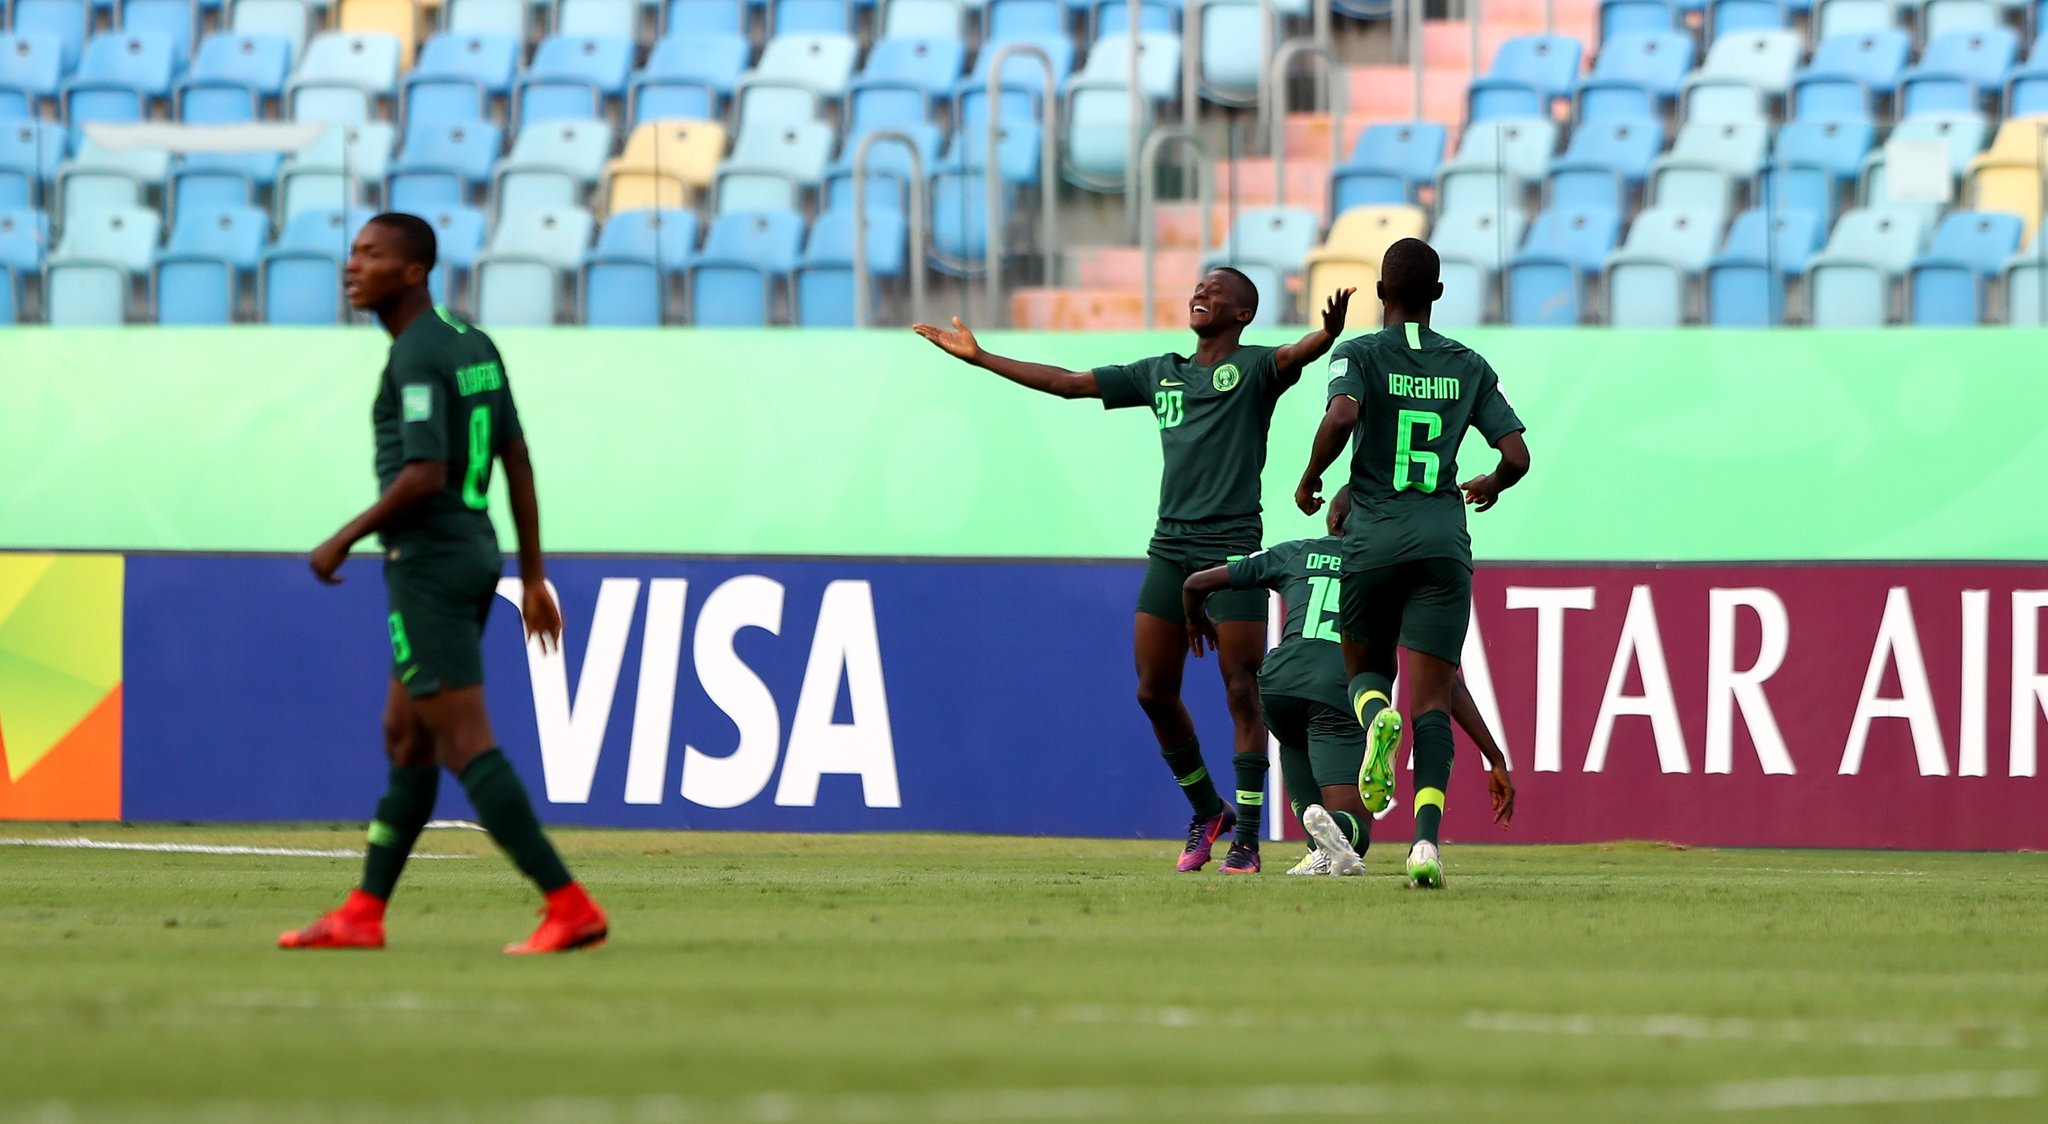 Sai'd Ibrahim: Seventh Nigerian To Net FIFA U-17 World Cup Hat-Trick